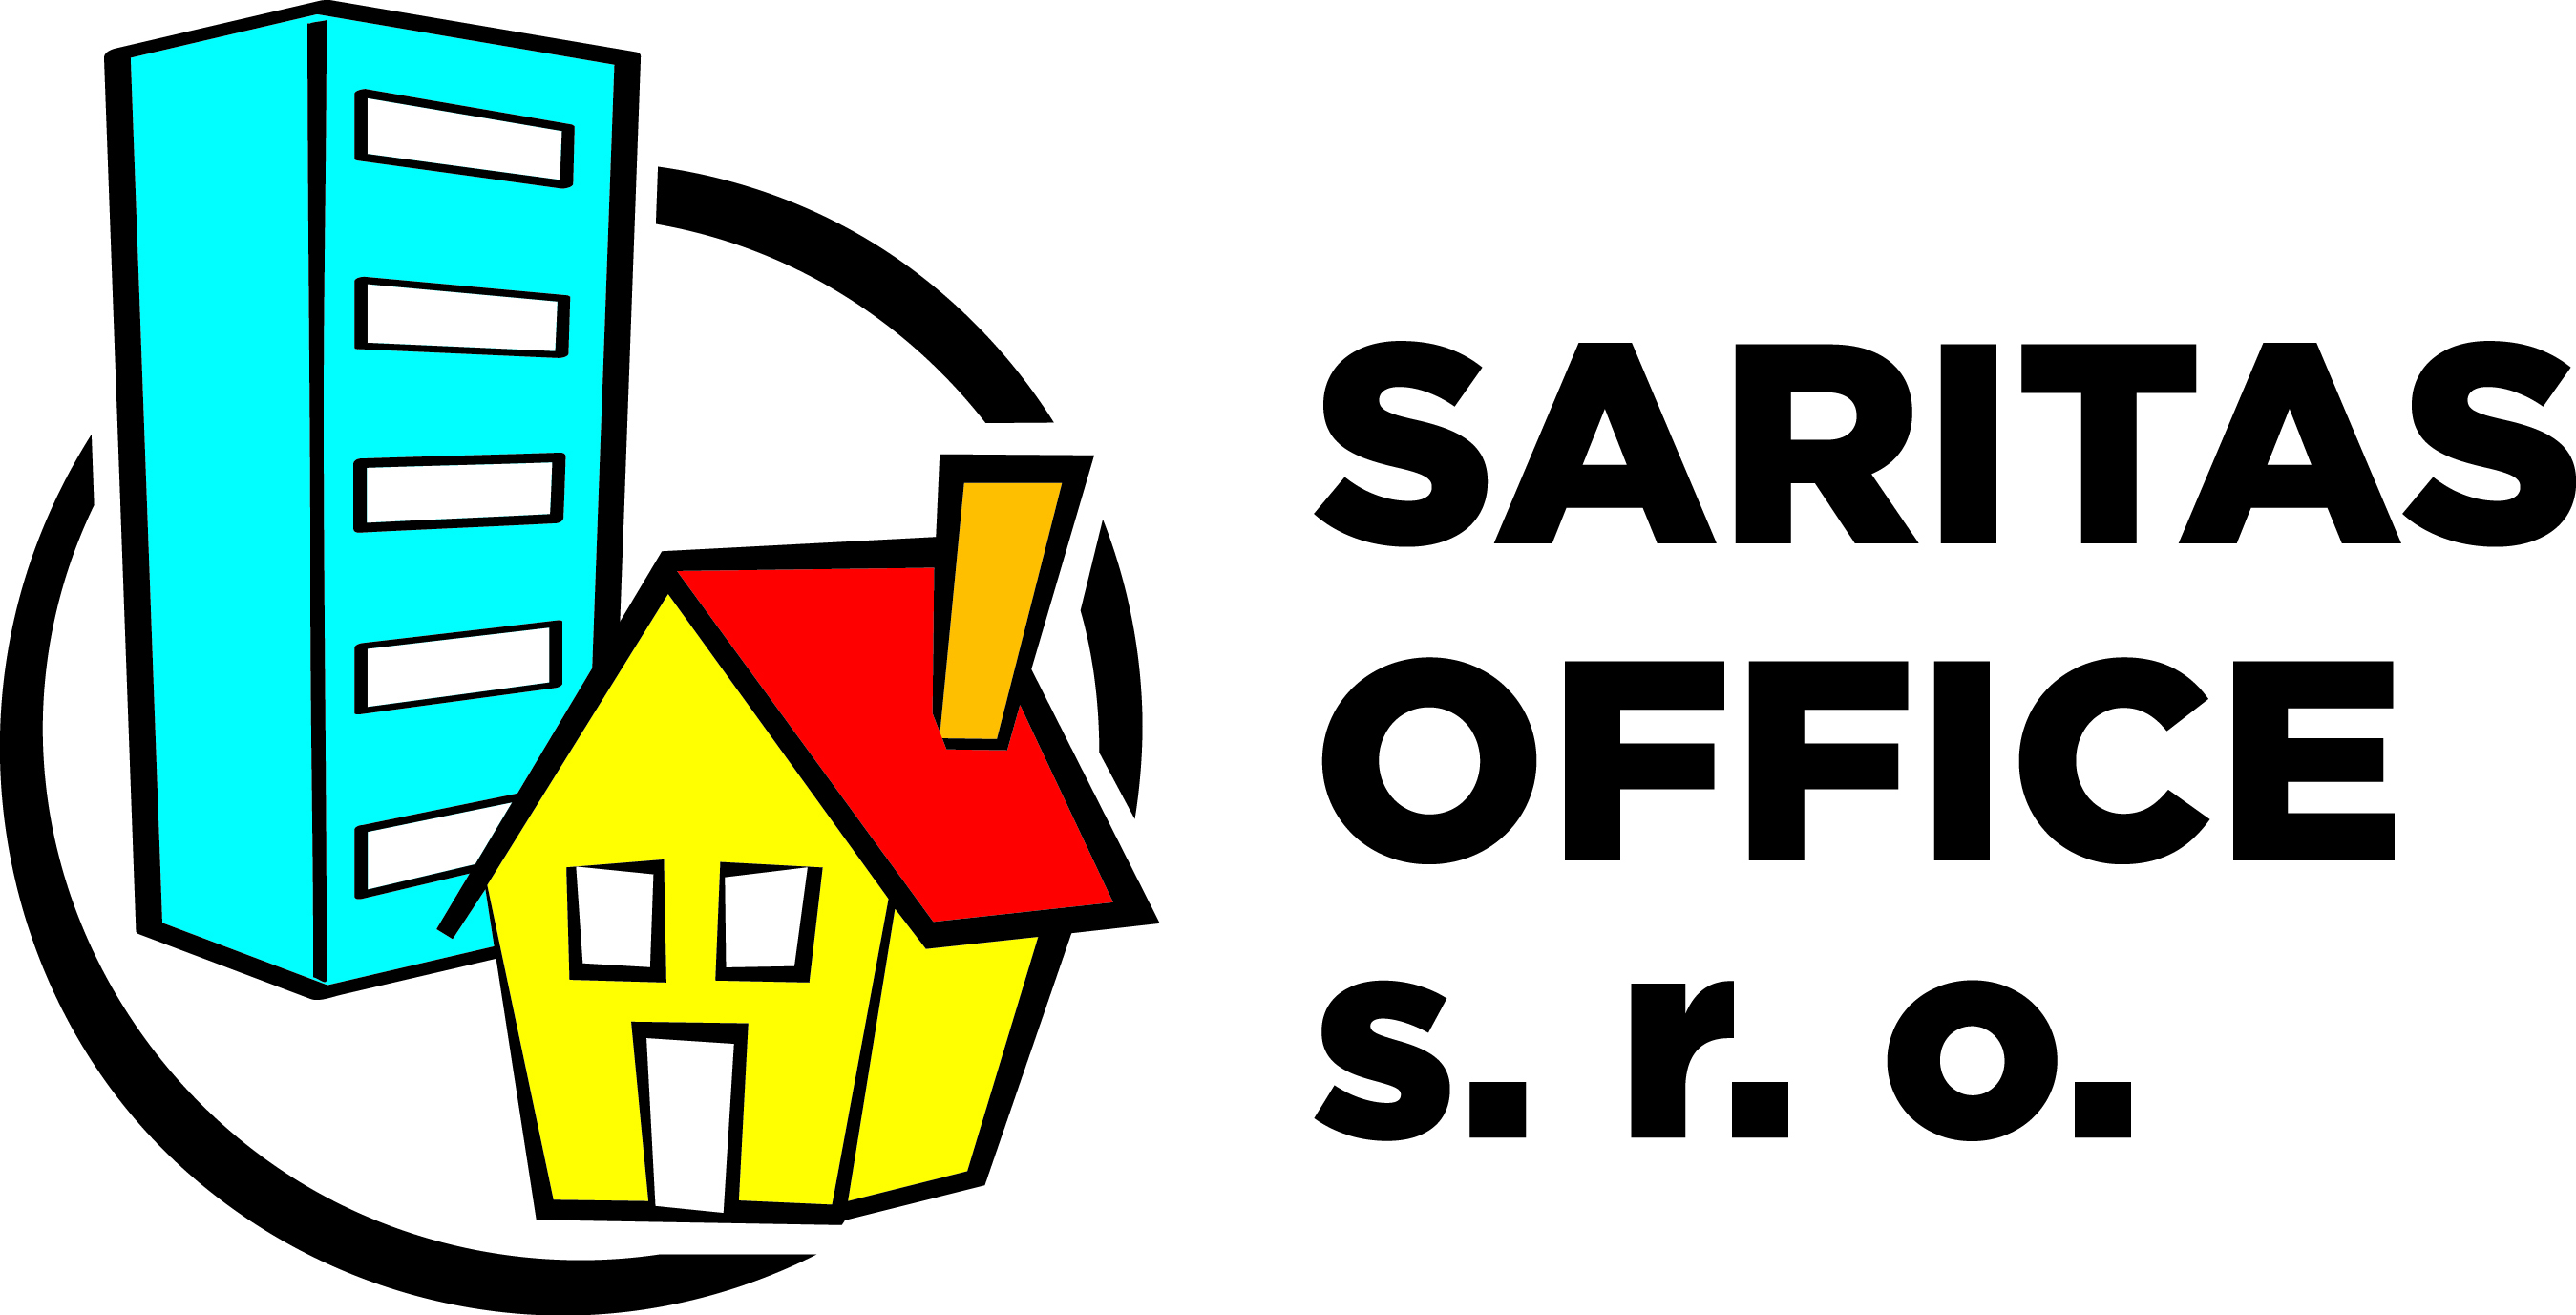 SARITAS OFFICE s.r.o.